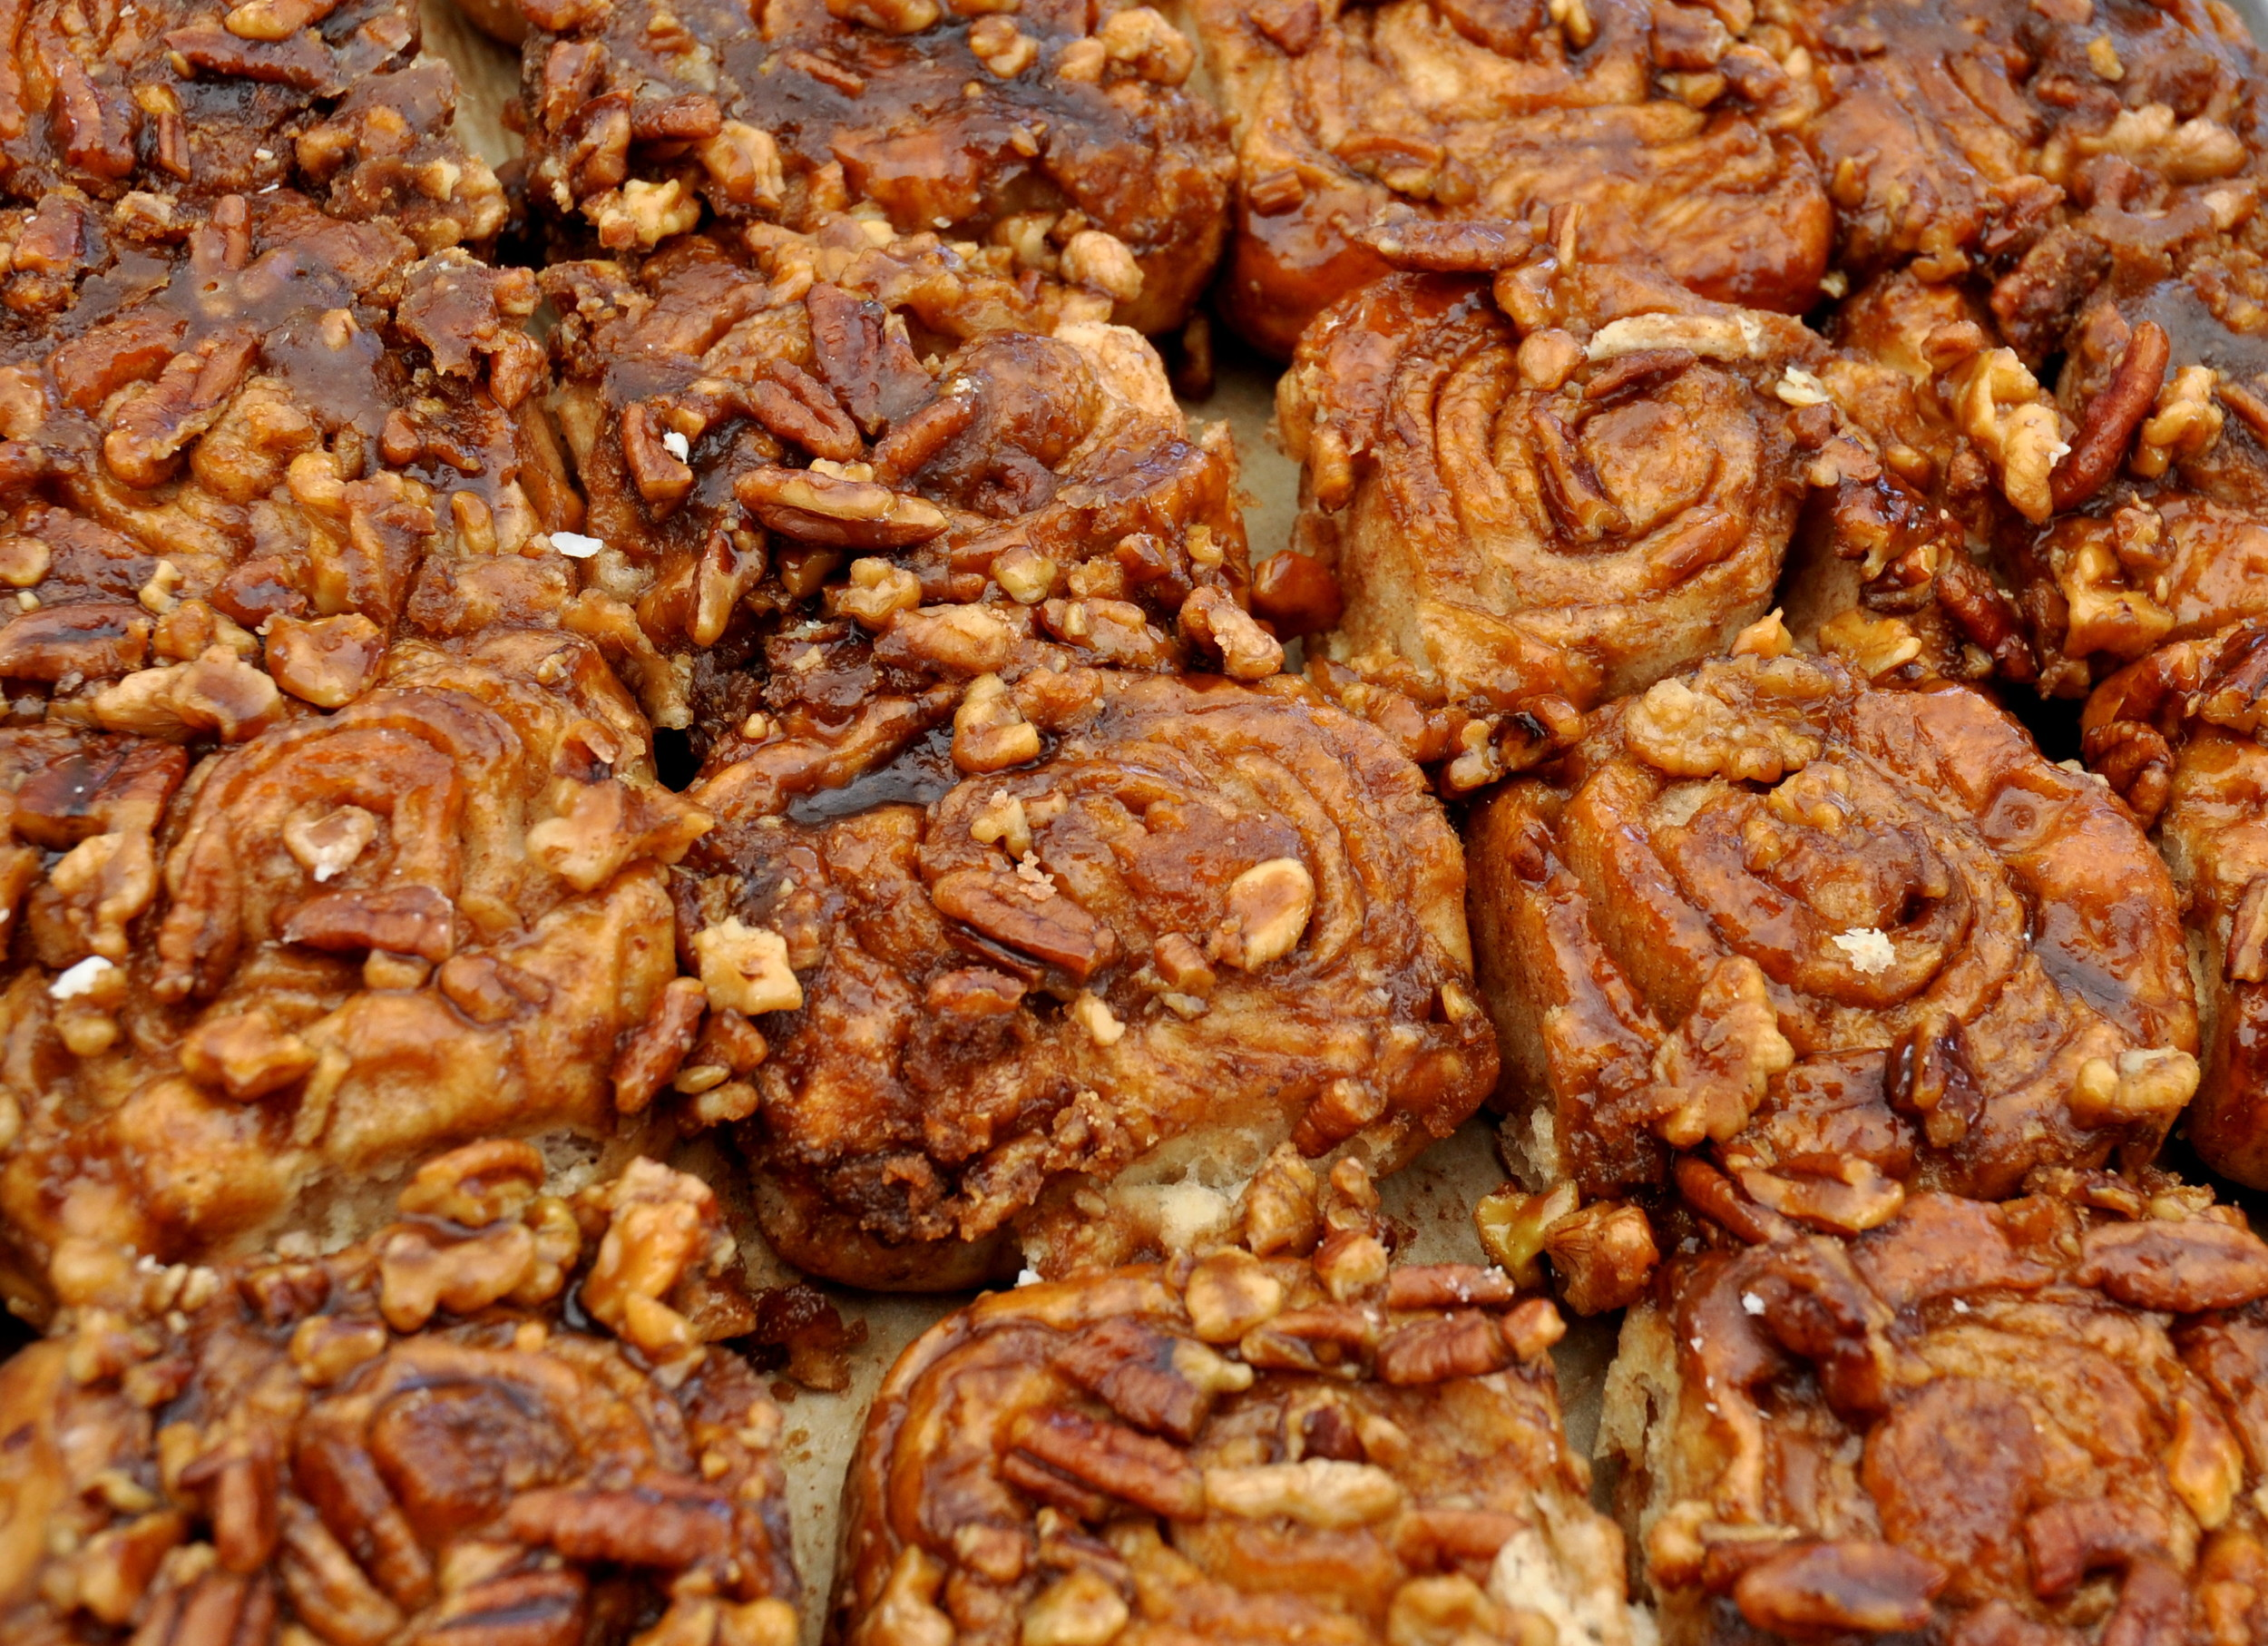 Sticky buns from Tall Grass Bakery. Photo copyright 2013 by Zachary D. Lyons.